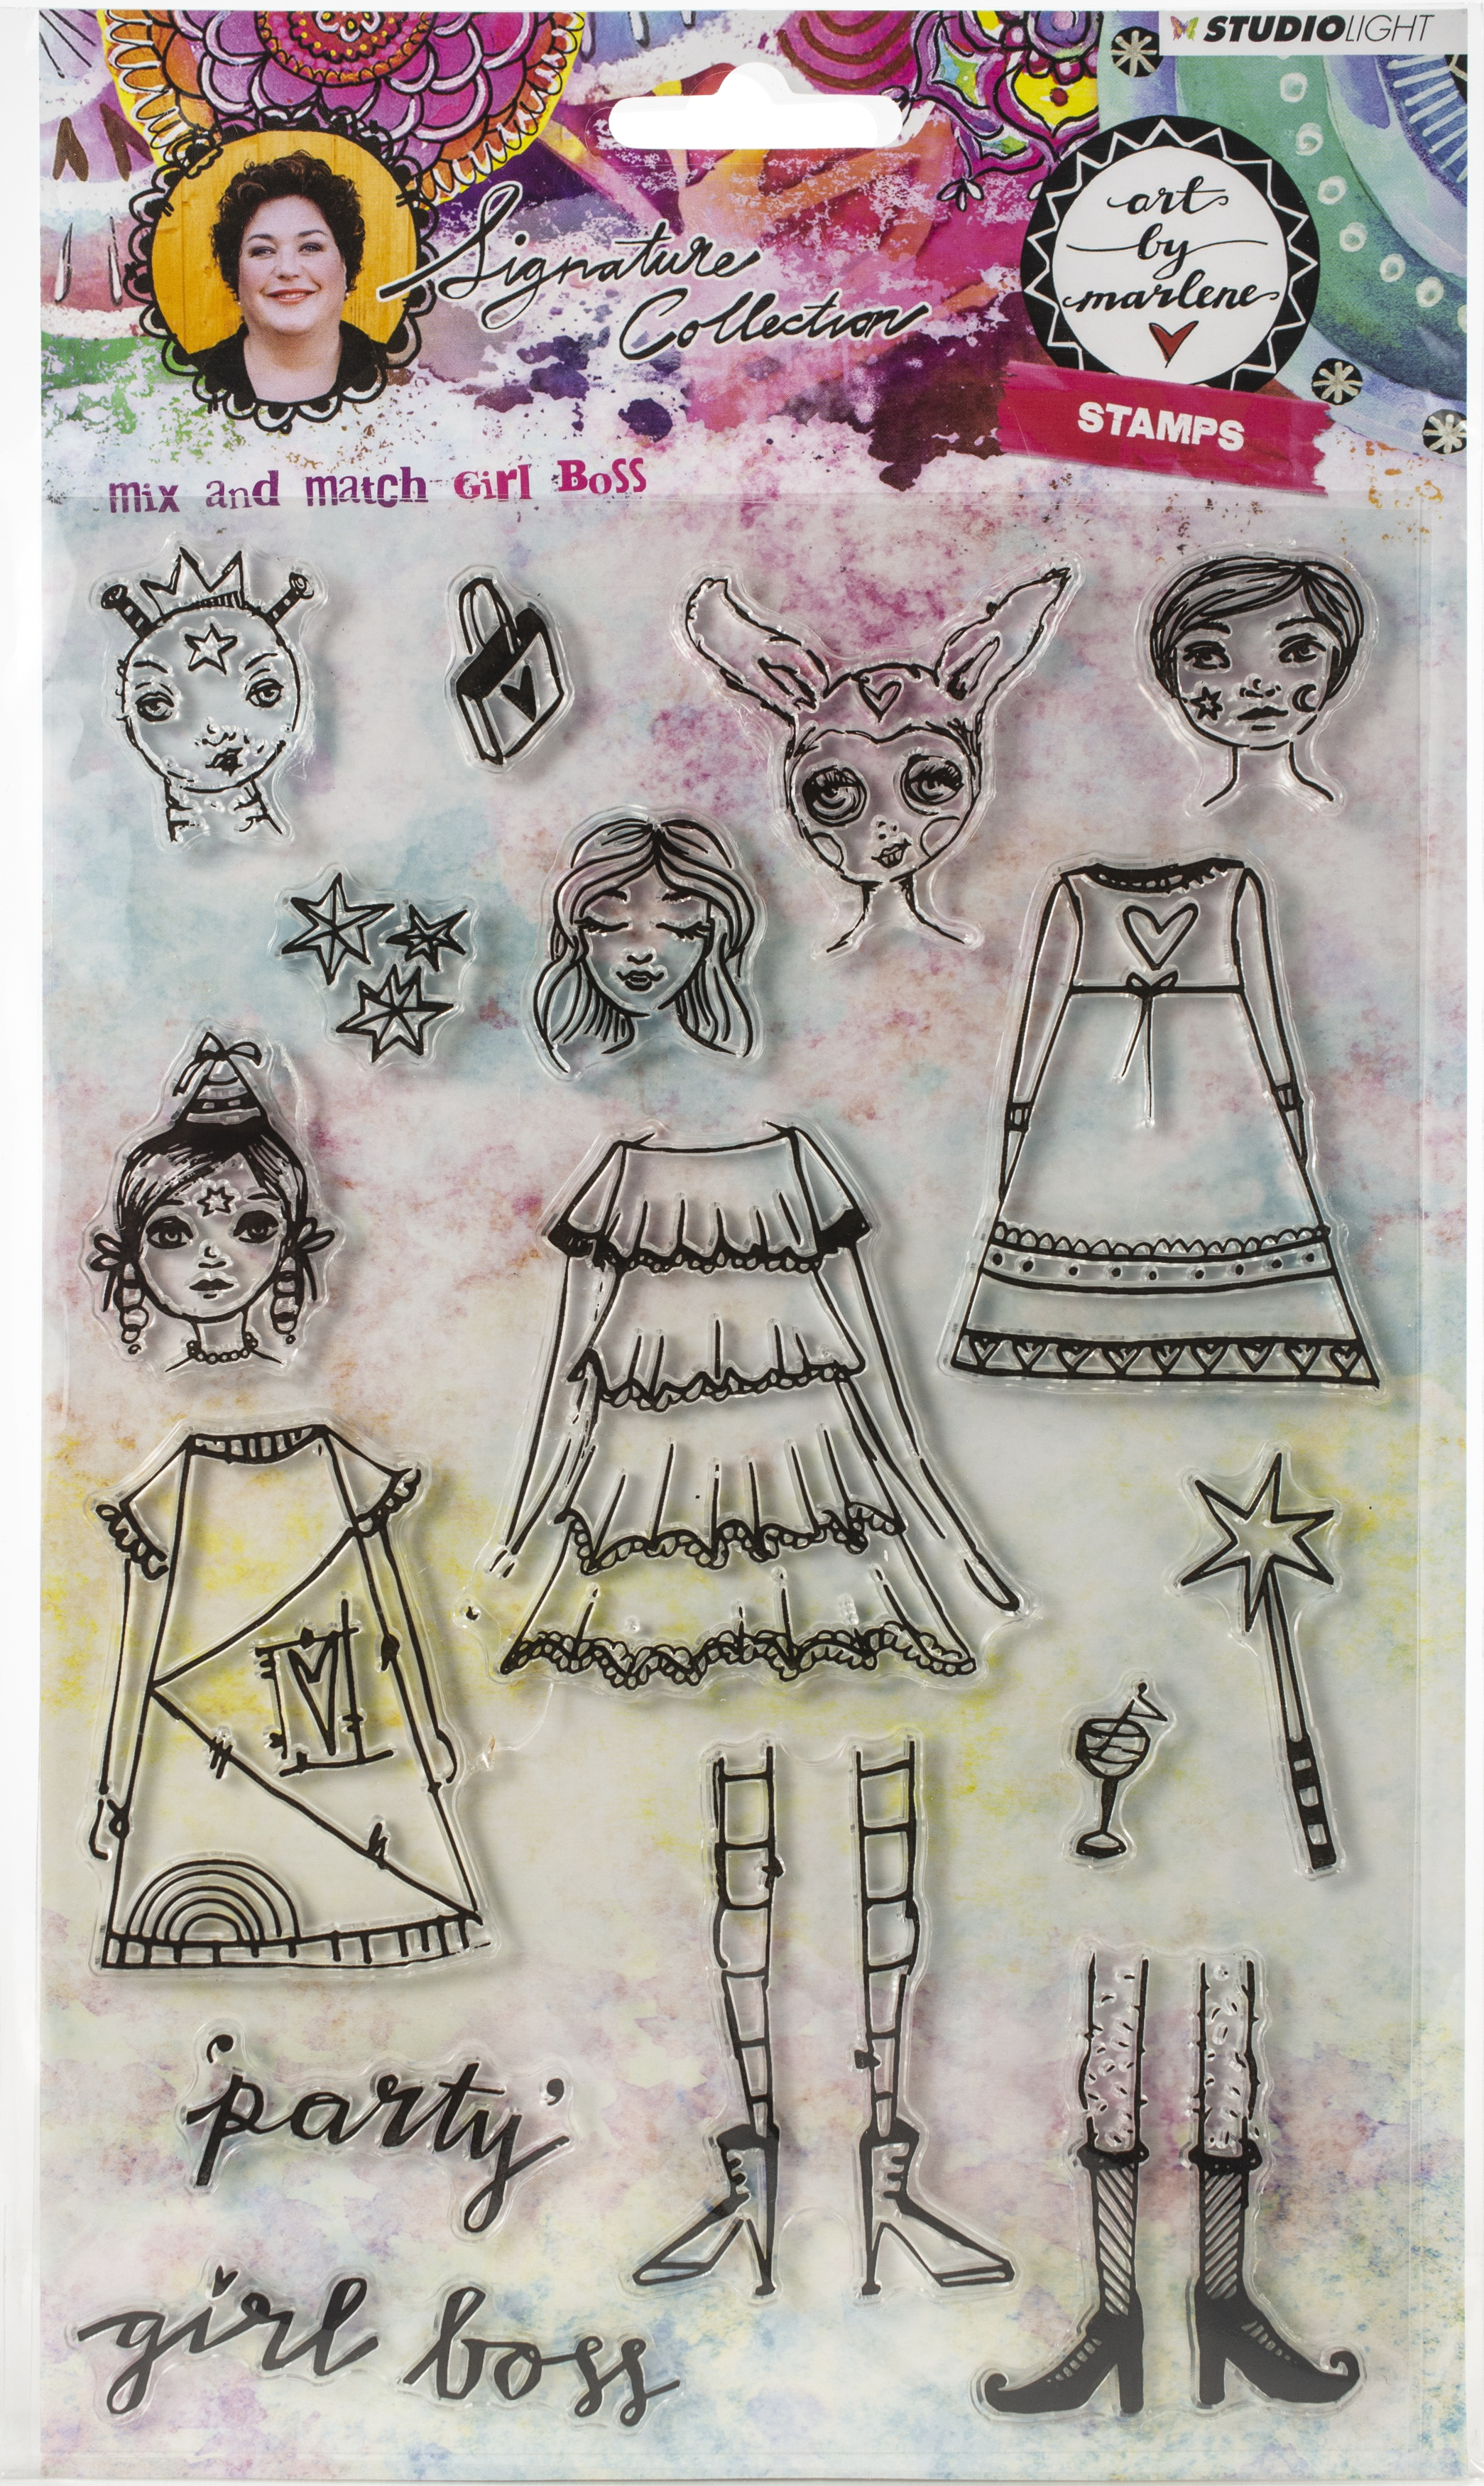 Studio Light Art By Marlene 3.0 Stamps-NR. 36, Girl Boss